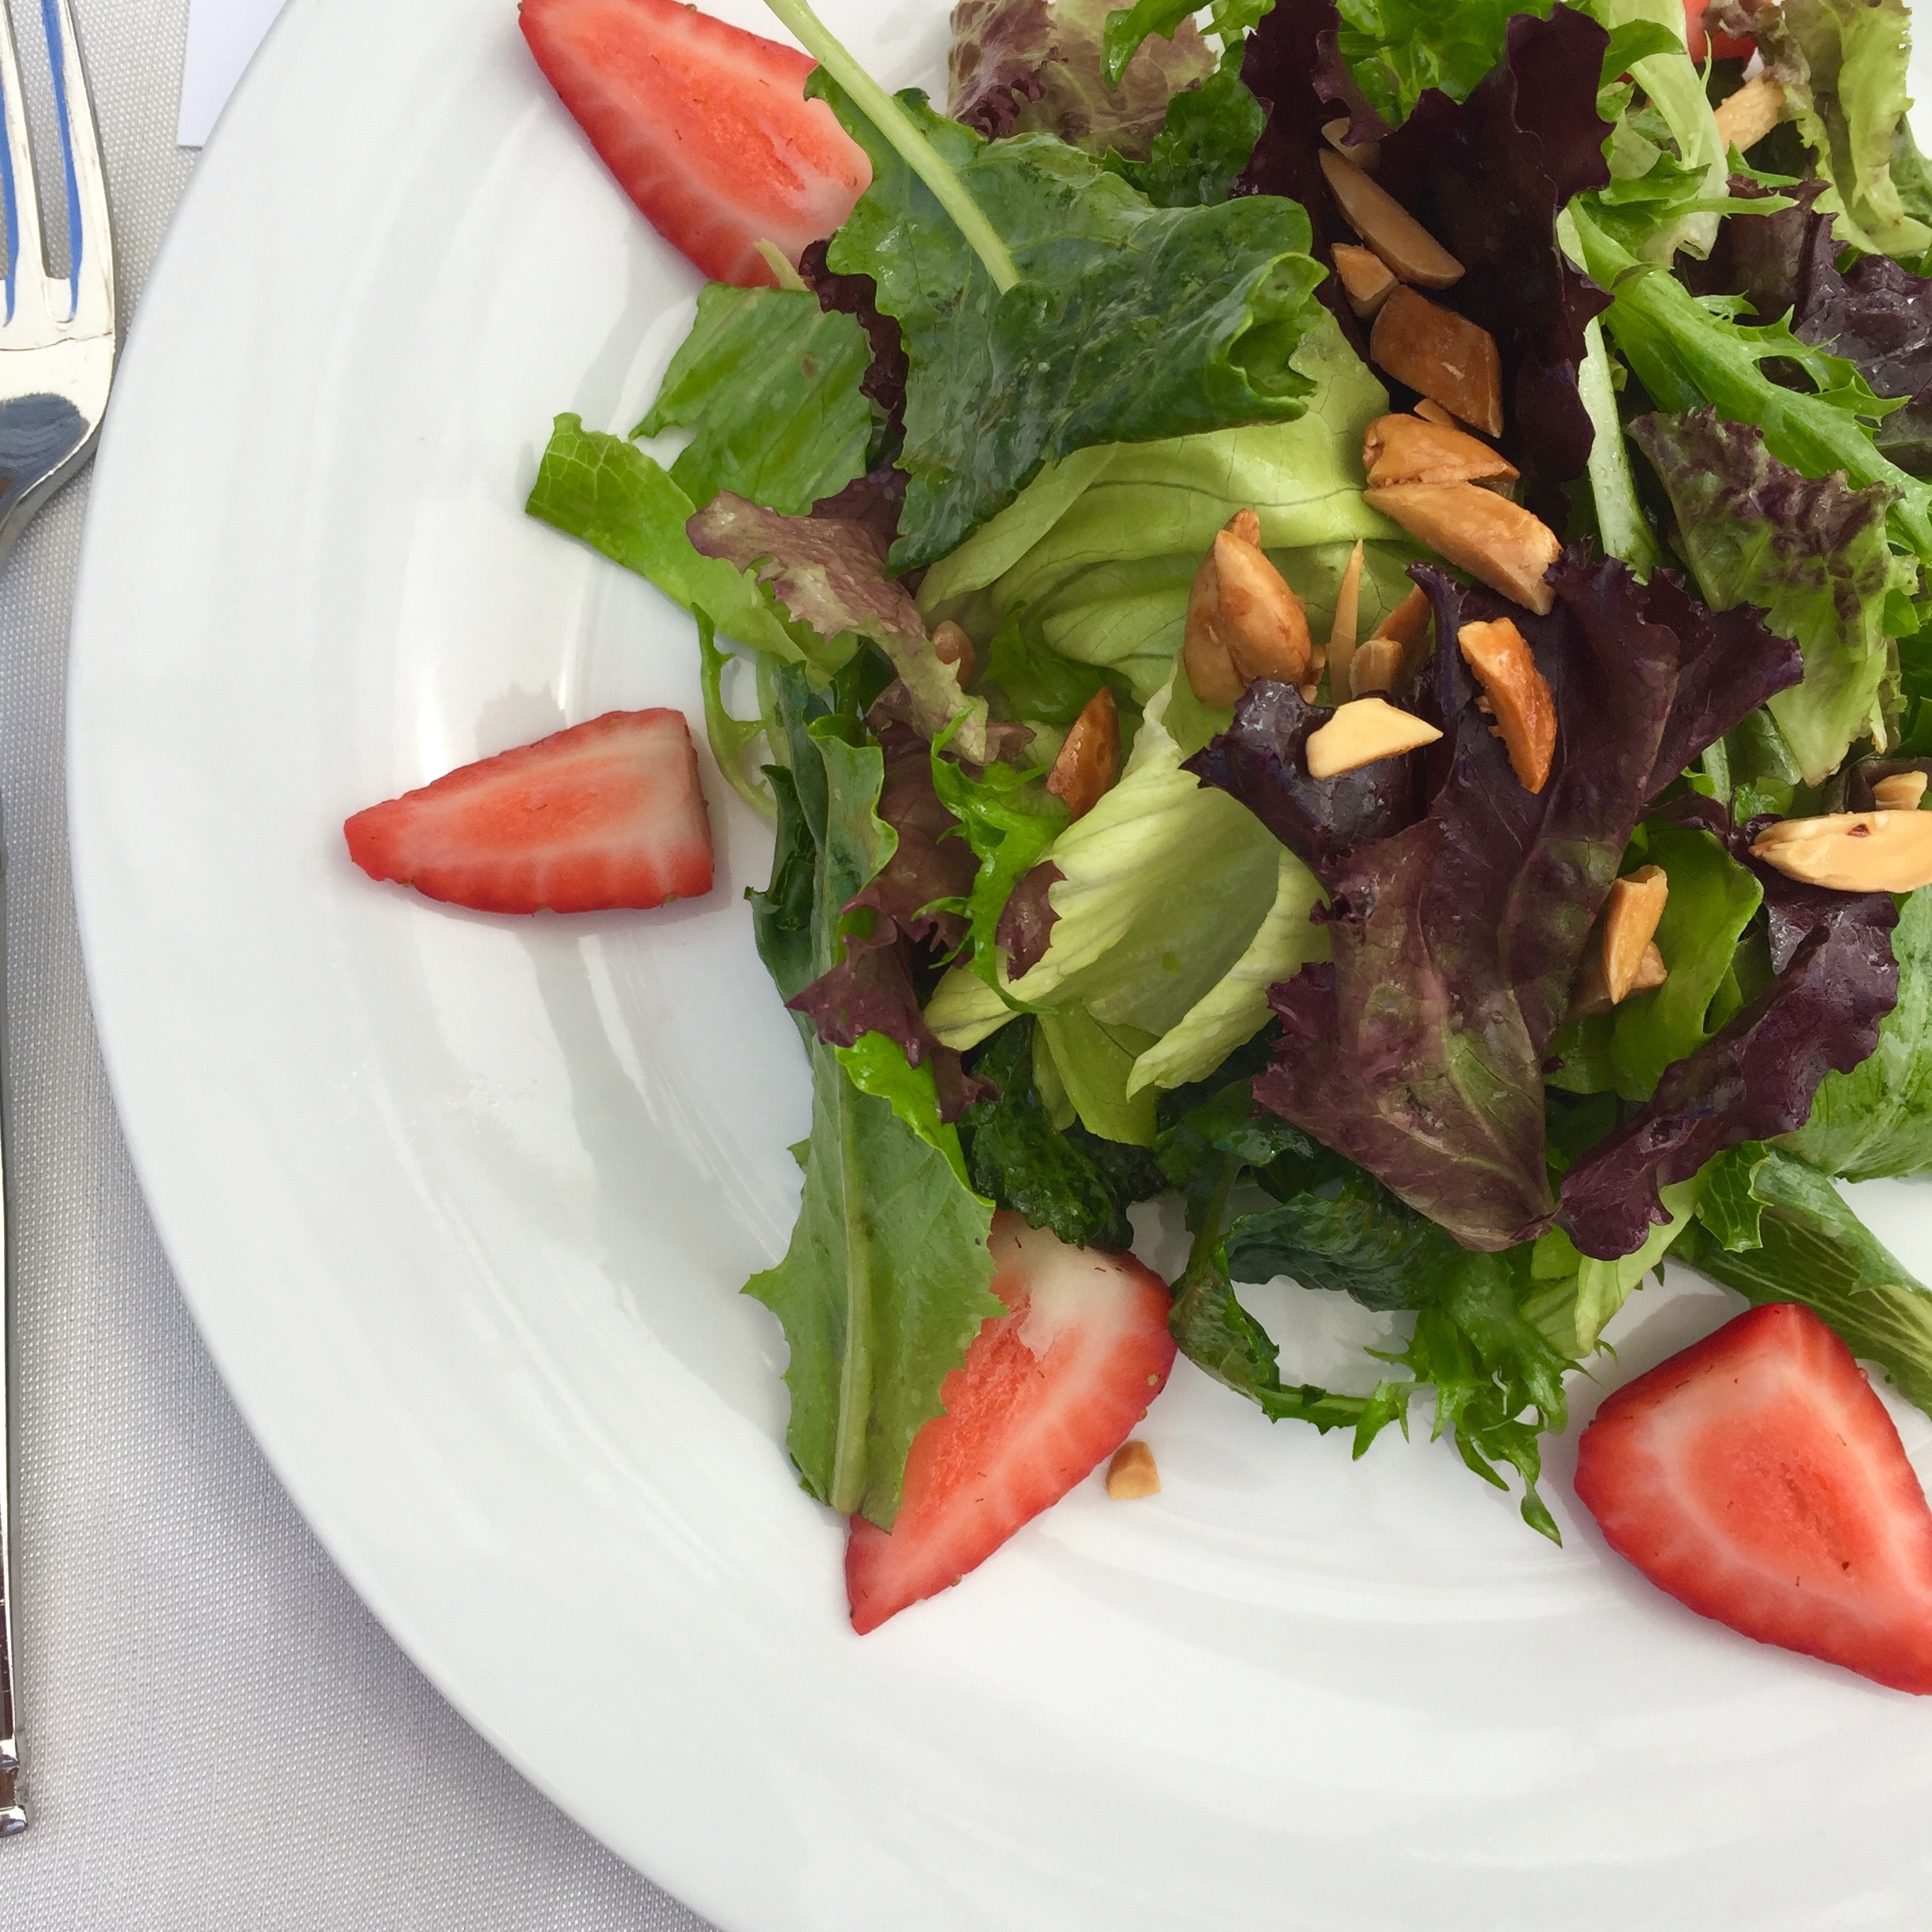 First course was a pretty salad of mixed greens with nuts, berries and a divine vinaigrette.